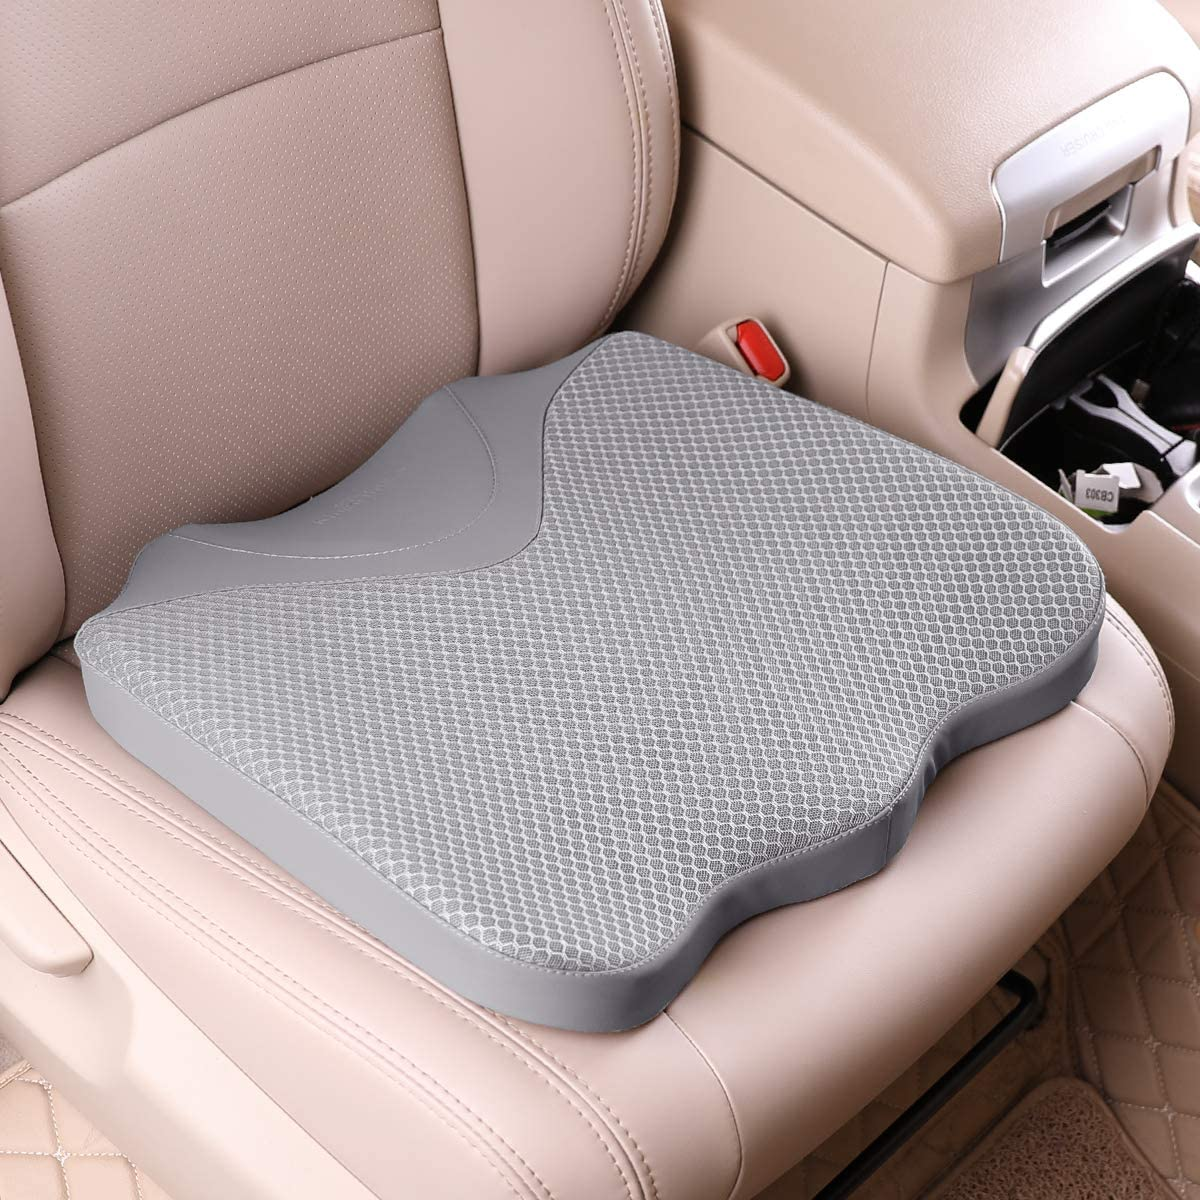 KINGLETING Car Seat Cushion, Driver Seat Cushion for Height, Universal Fit for Most for Auto SUV Truck,Provides Good Driving Visibility (Gray)